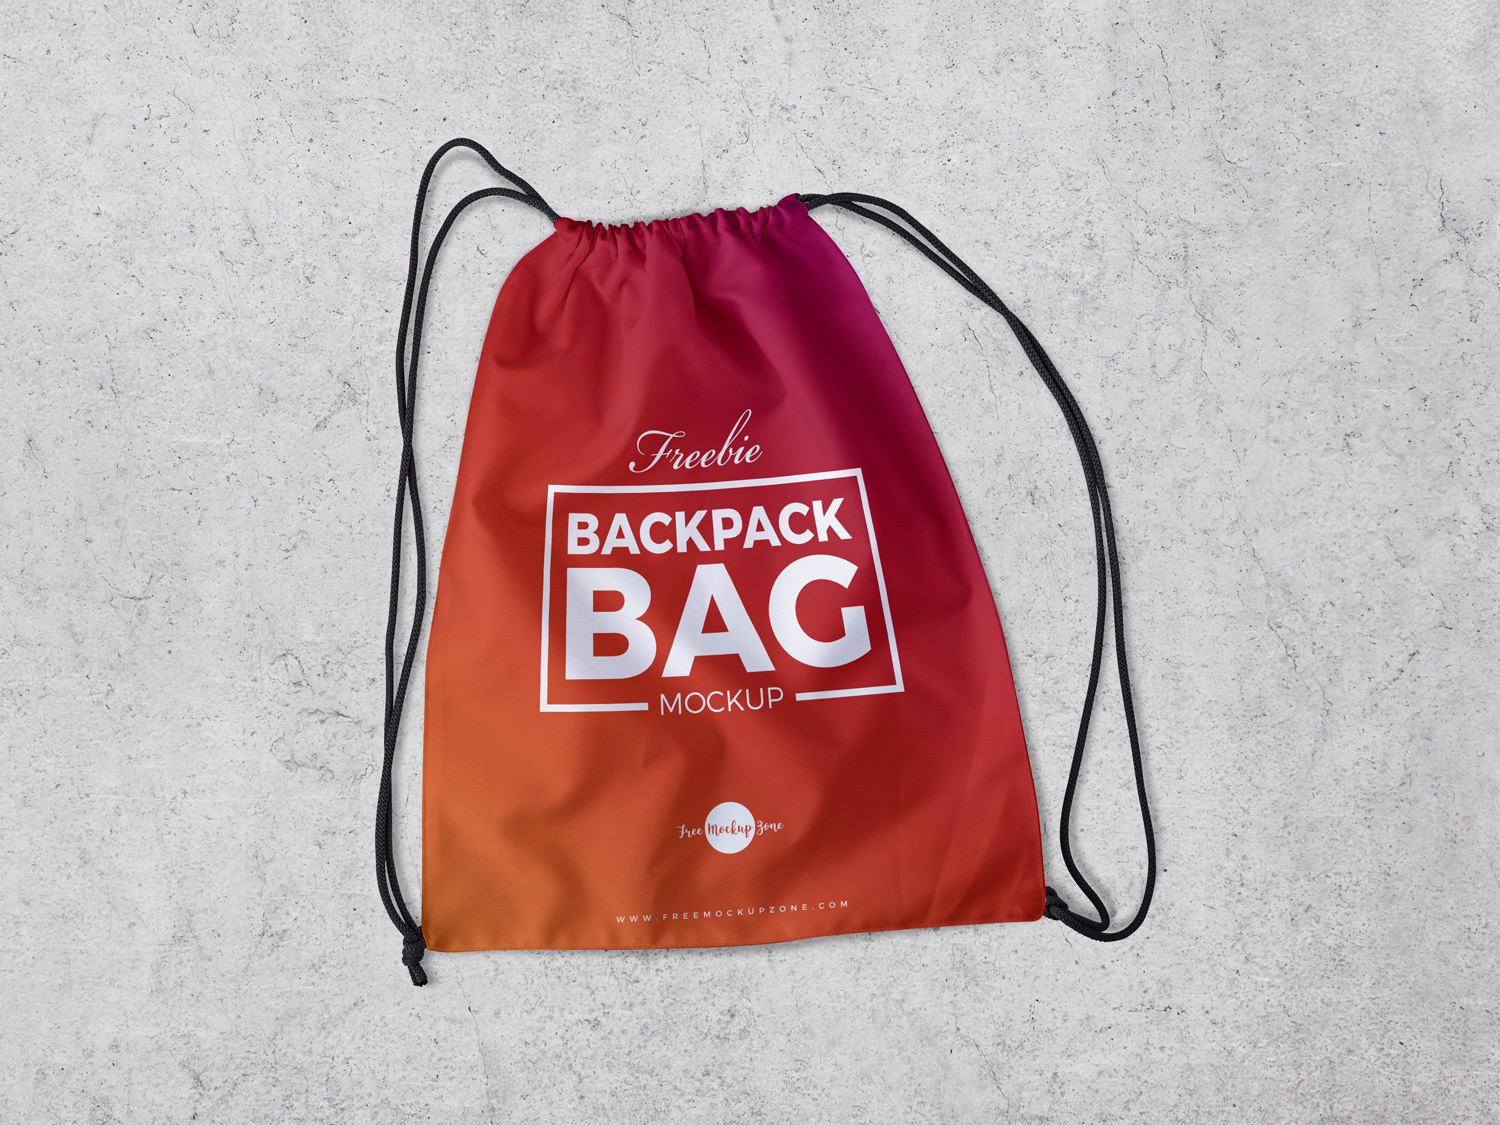 Free-Backpack-Bag-Mockup-PSD-600